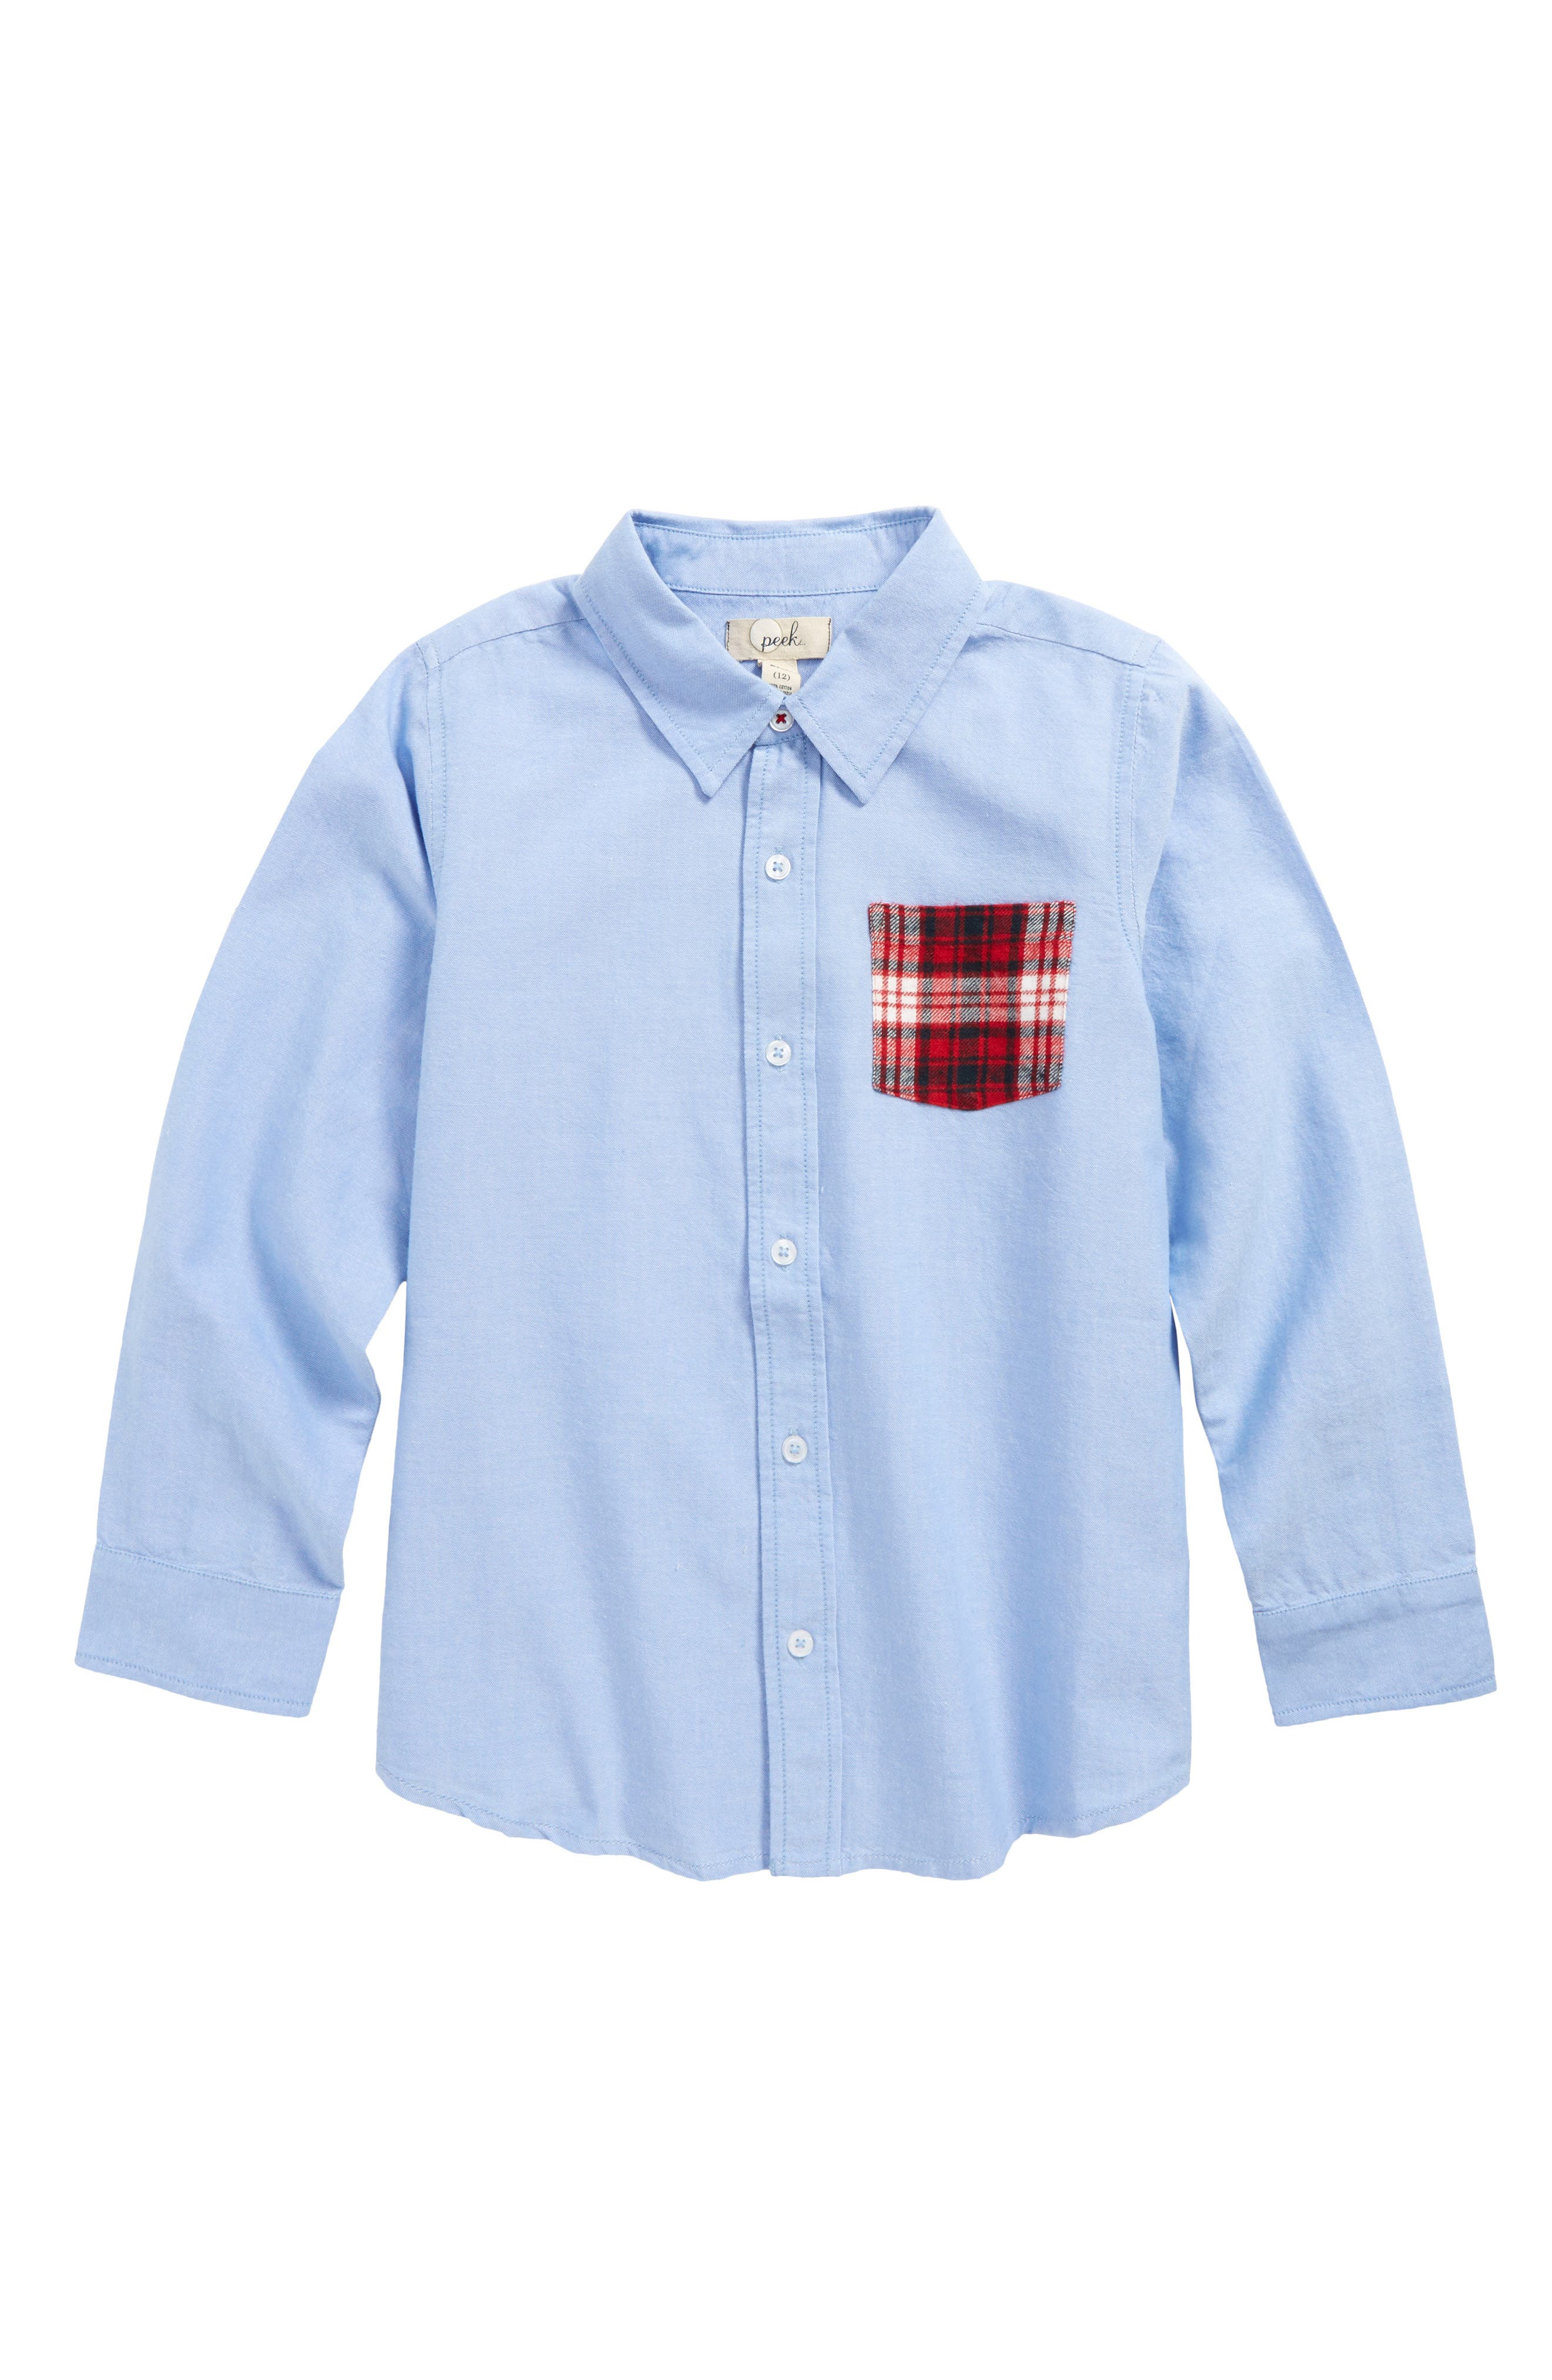 Peek Johnny Oxford Shirt,                             Main thumbnail 1, color,                             400